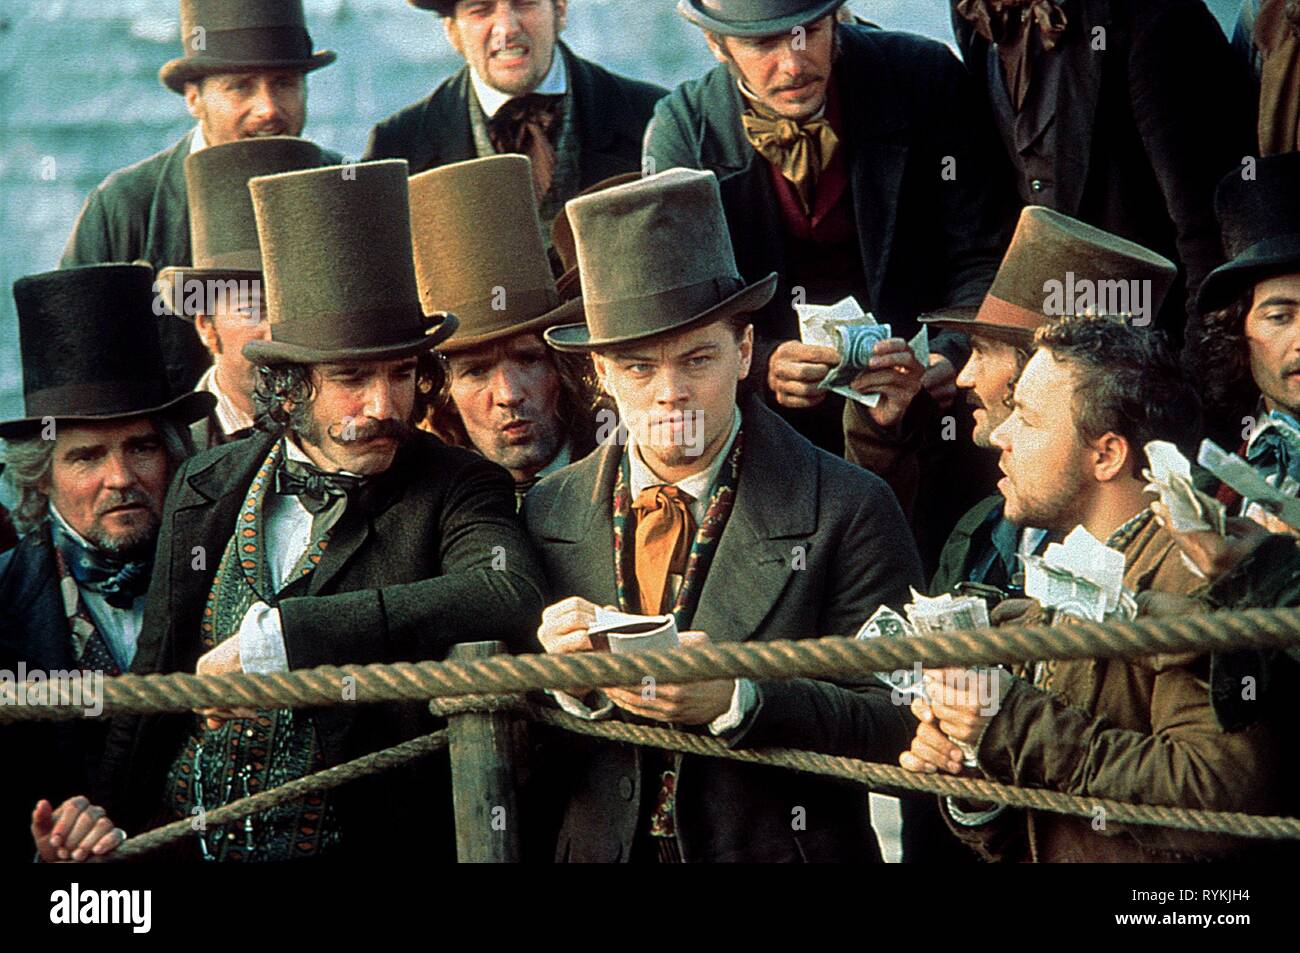 DAY-LEWIS,DICAPRIO, GANGS OF NEW YORK, 2002 Stock Photo